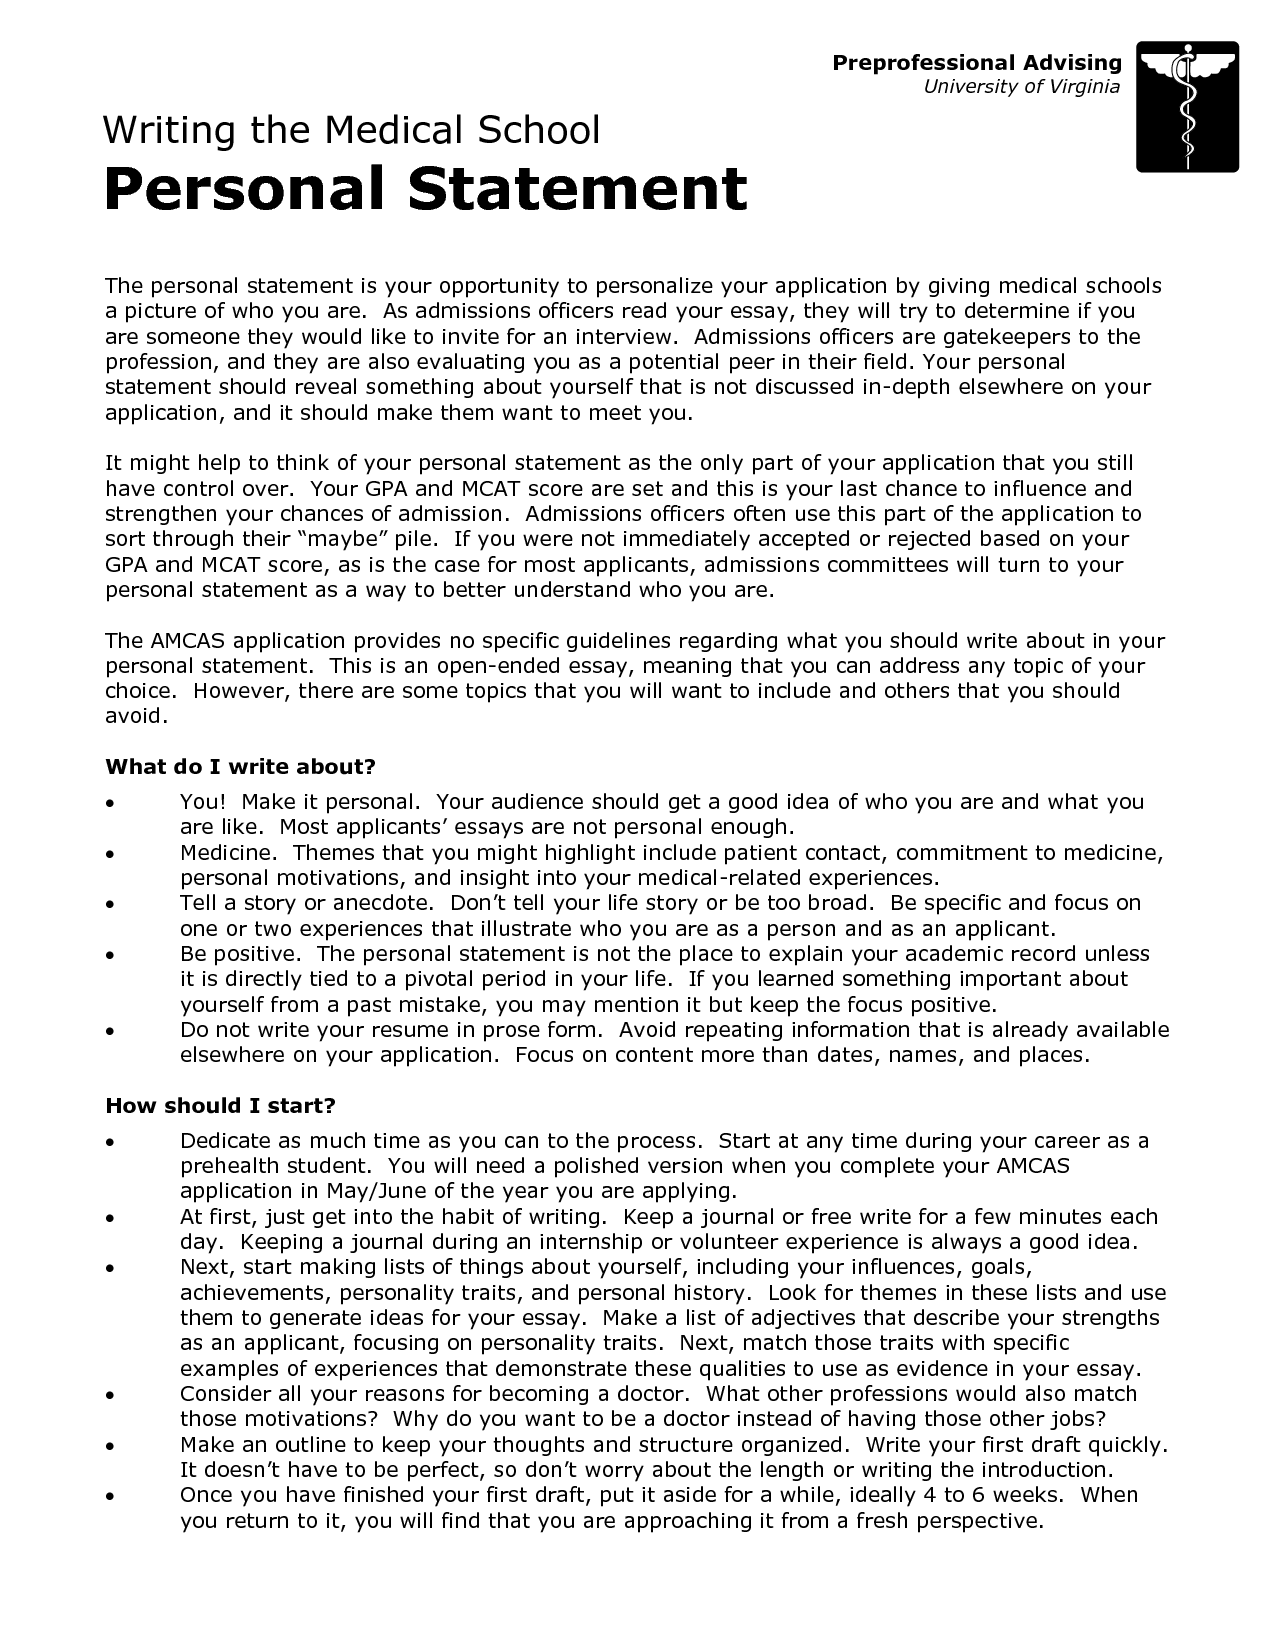 orthopedic surgery personal statement